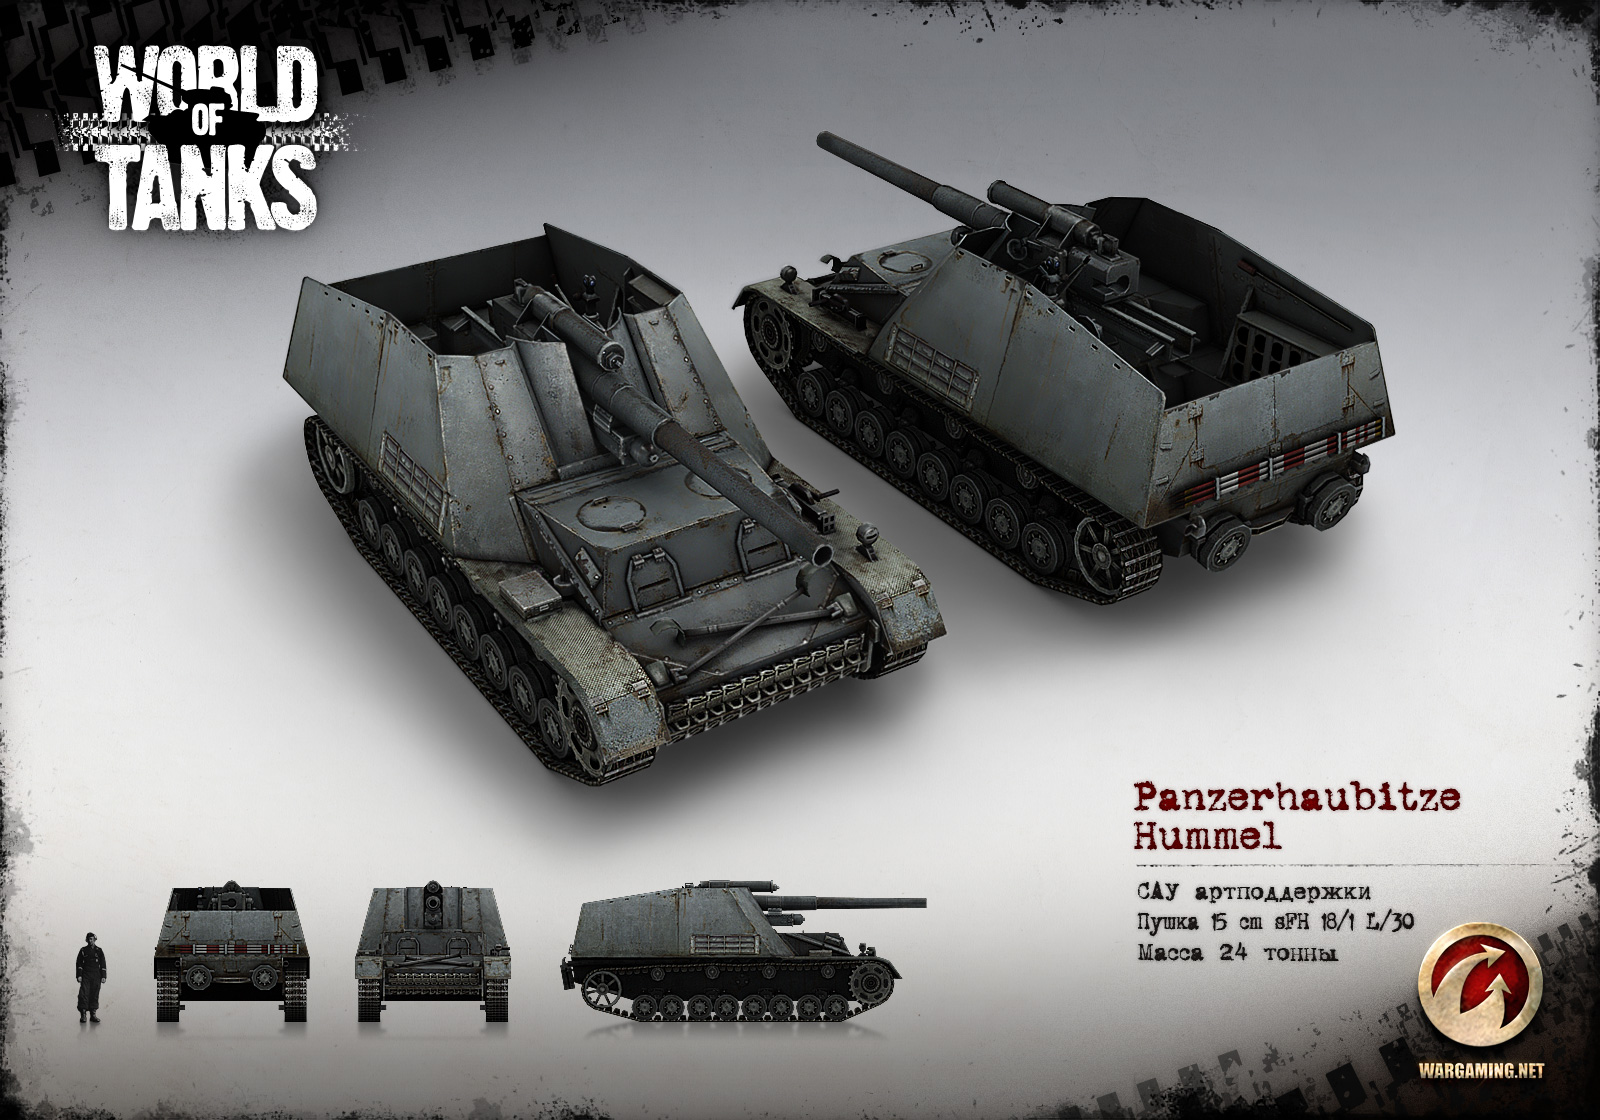 1 world of tanks игры rush правила